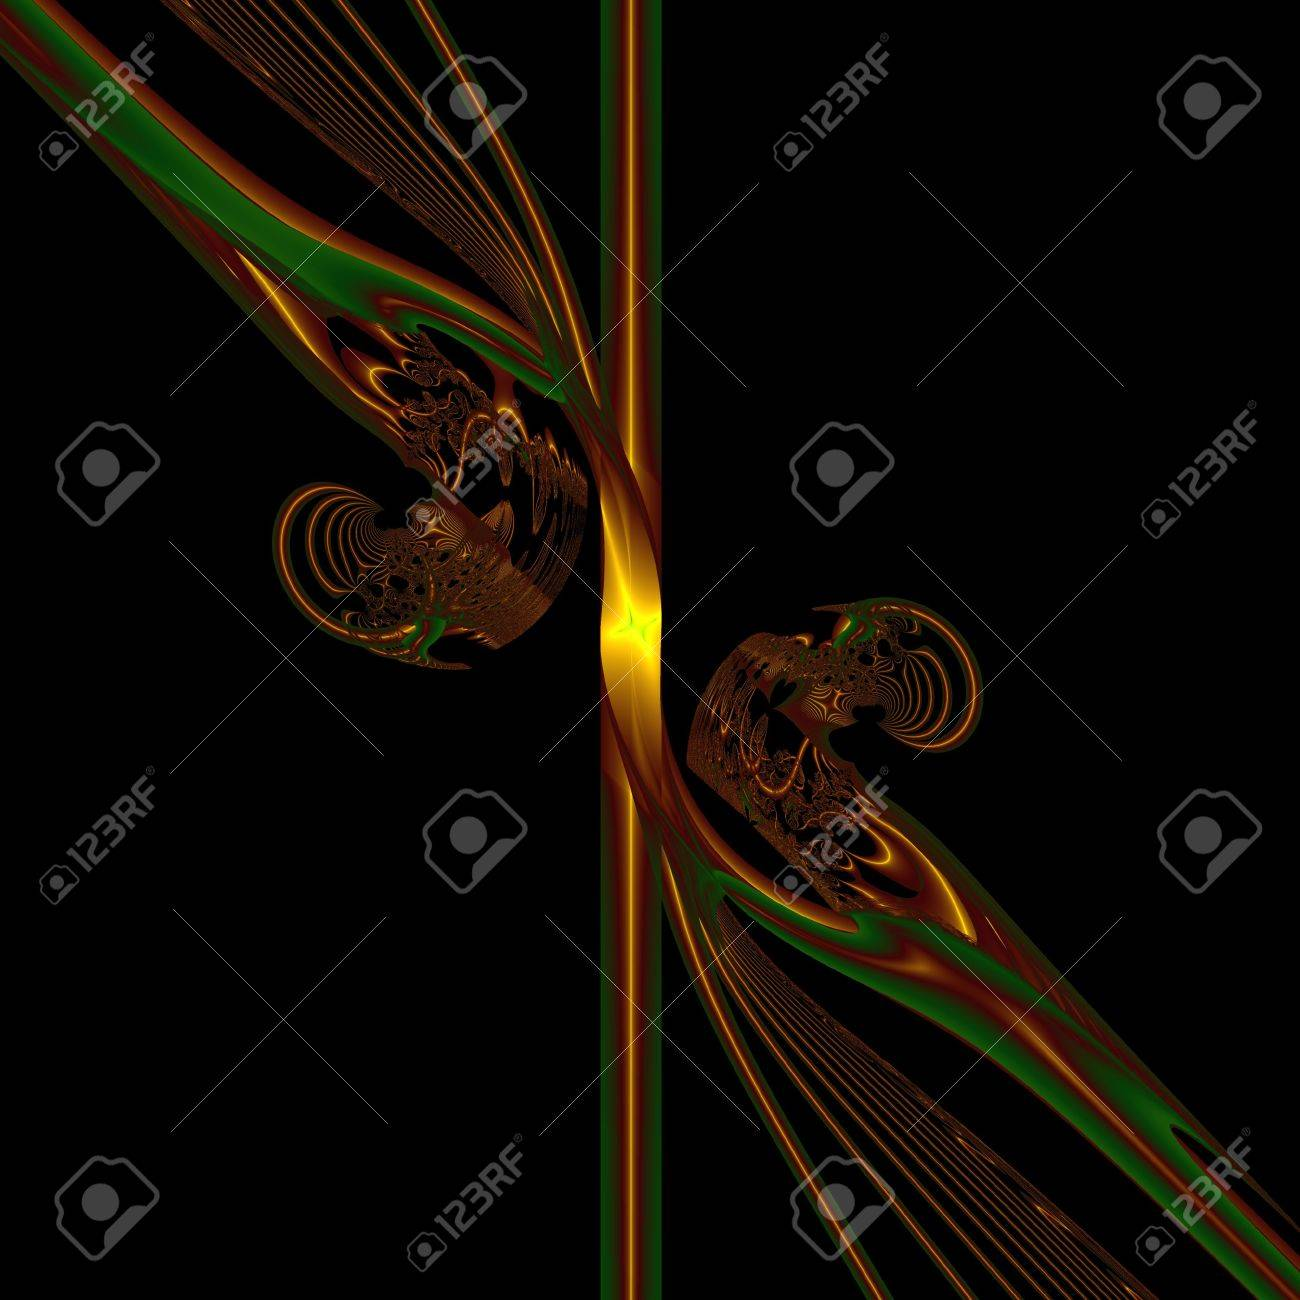 Magic staff. Gold metal staff rich in ornament, computer-generated image on black background Stock Photo - 5099635